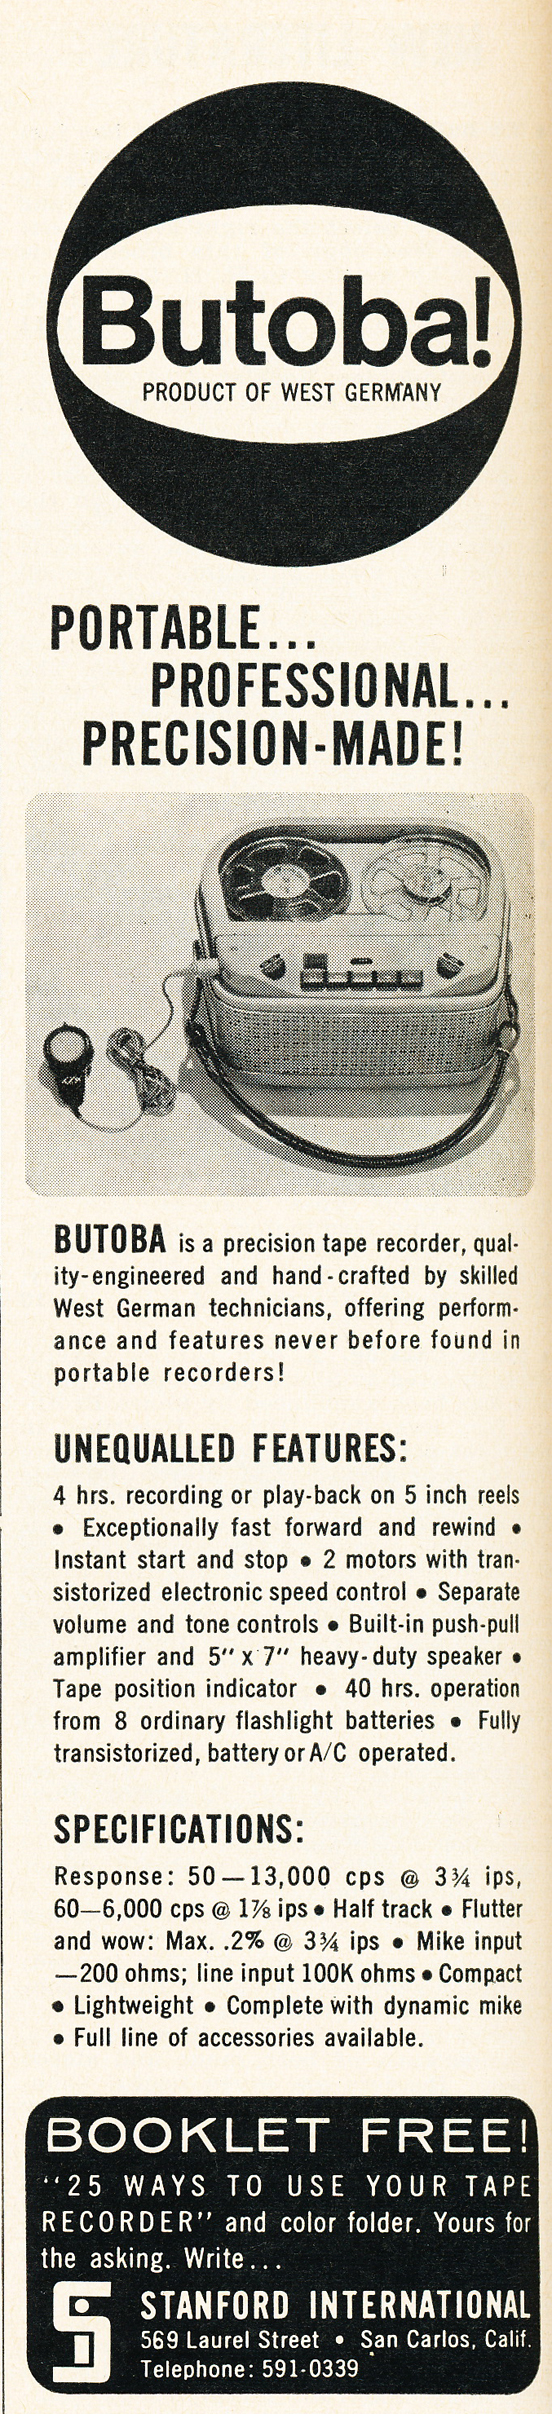 1962 ad for the Butoba reel to reel tape recorder in Reel2ReelTexas.com's vintage recording collection